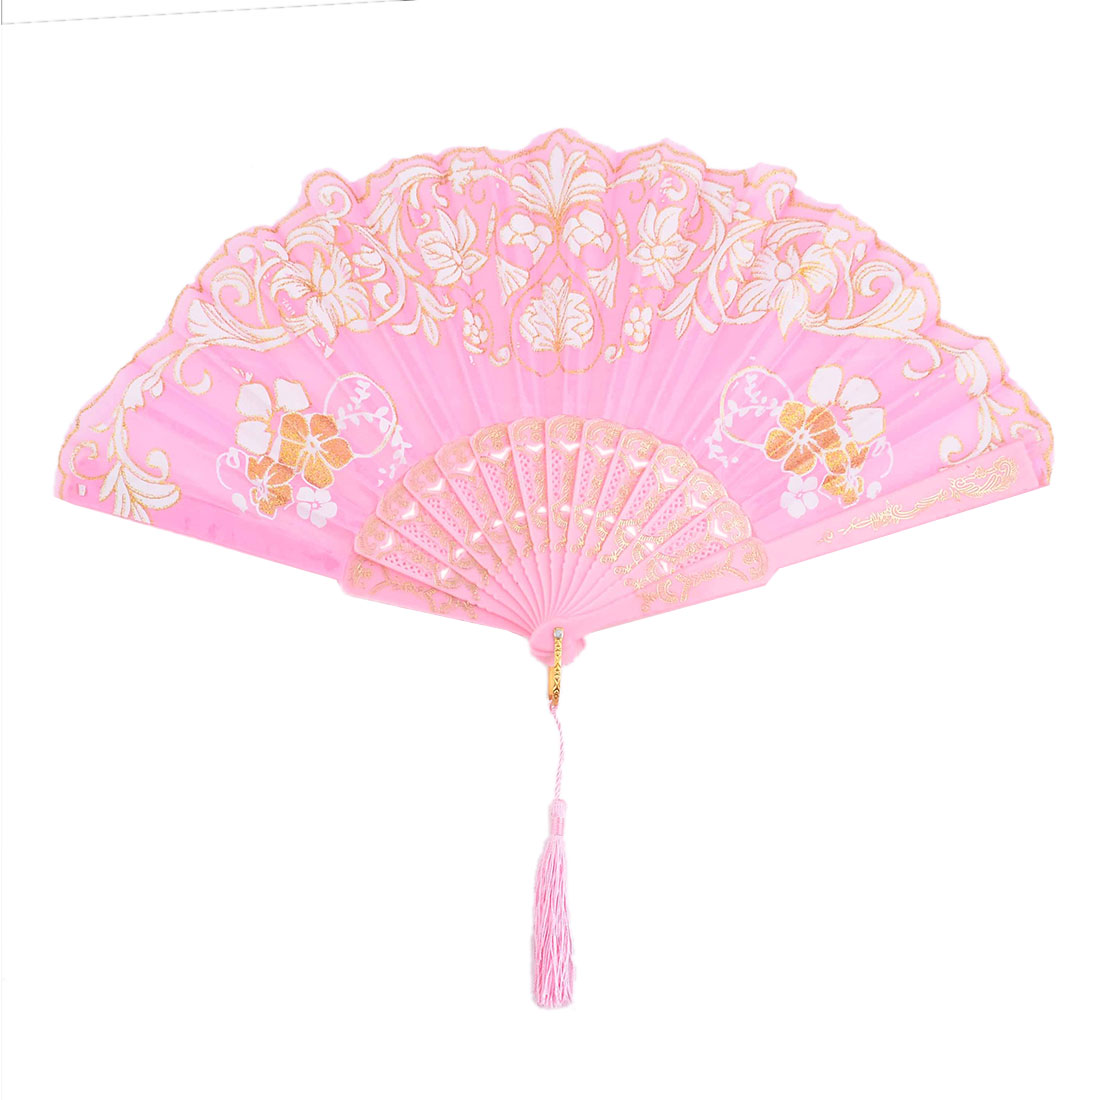 Birthday Gift Plastic Flower Pattern Folding Cooling Dancing Hand Fan Pink 24.4cm Length